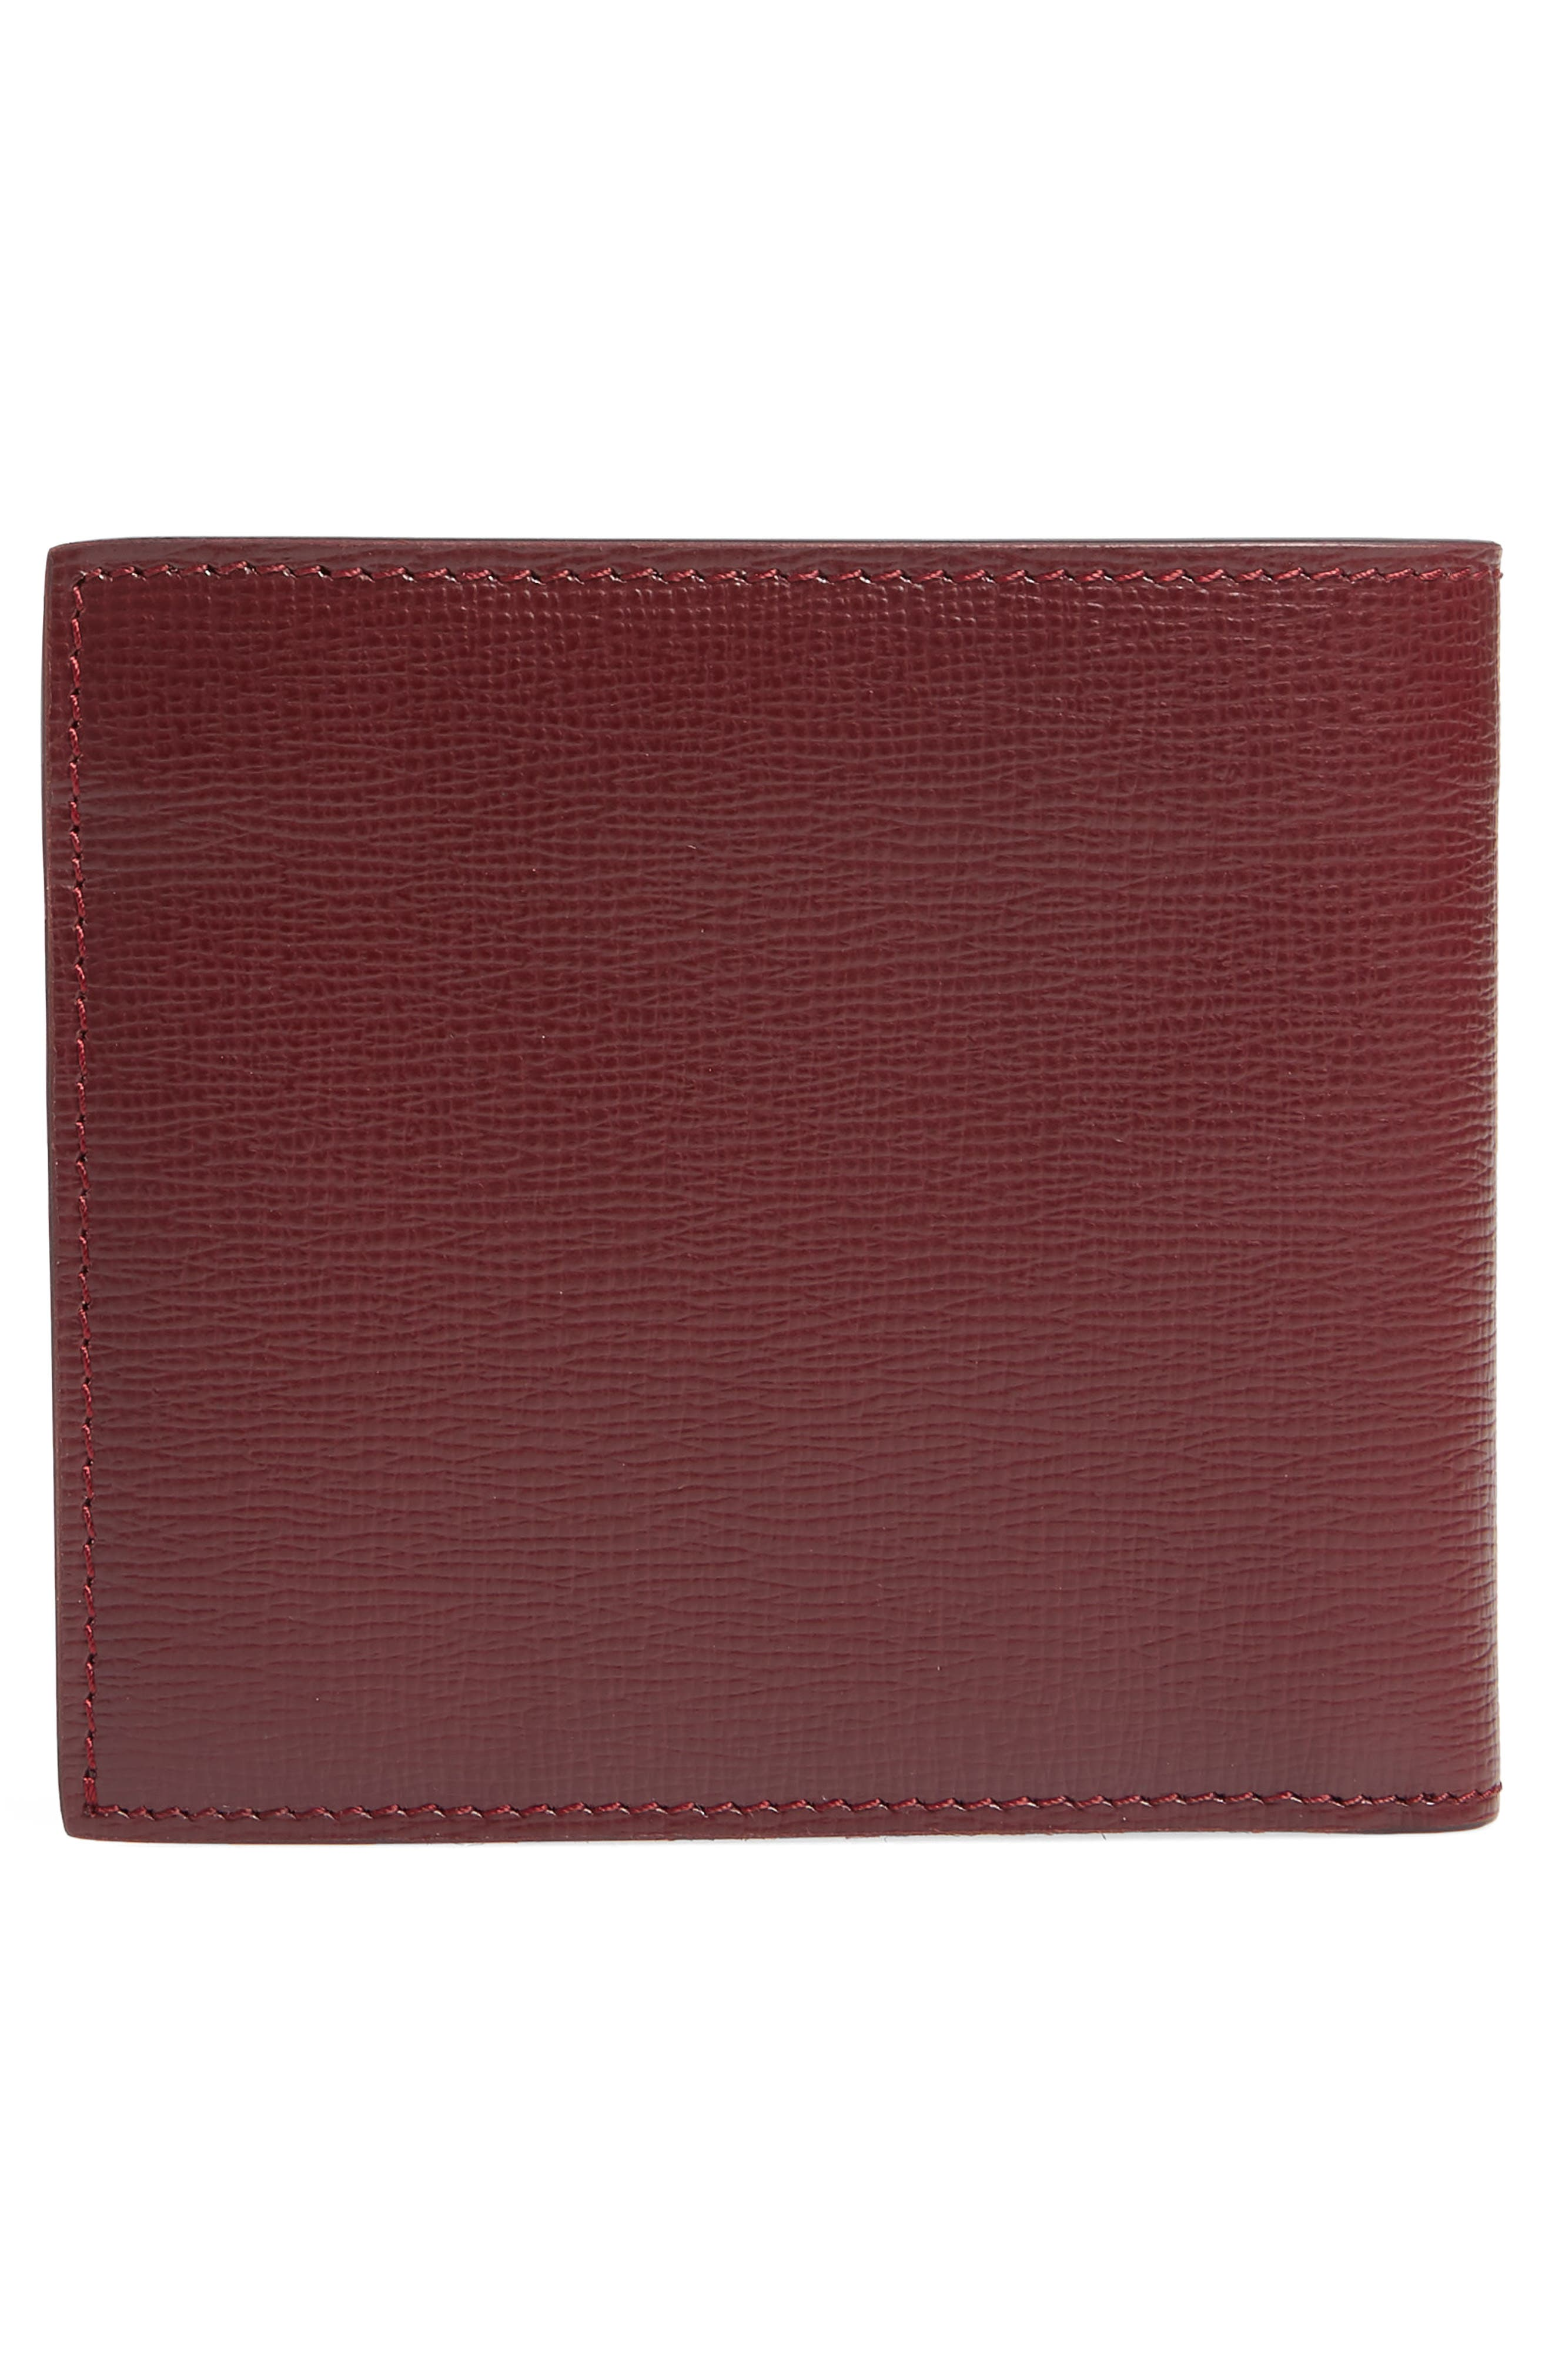 Leather Bifold Wallet,                             Alternate thumbnail 3, color,